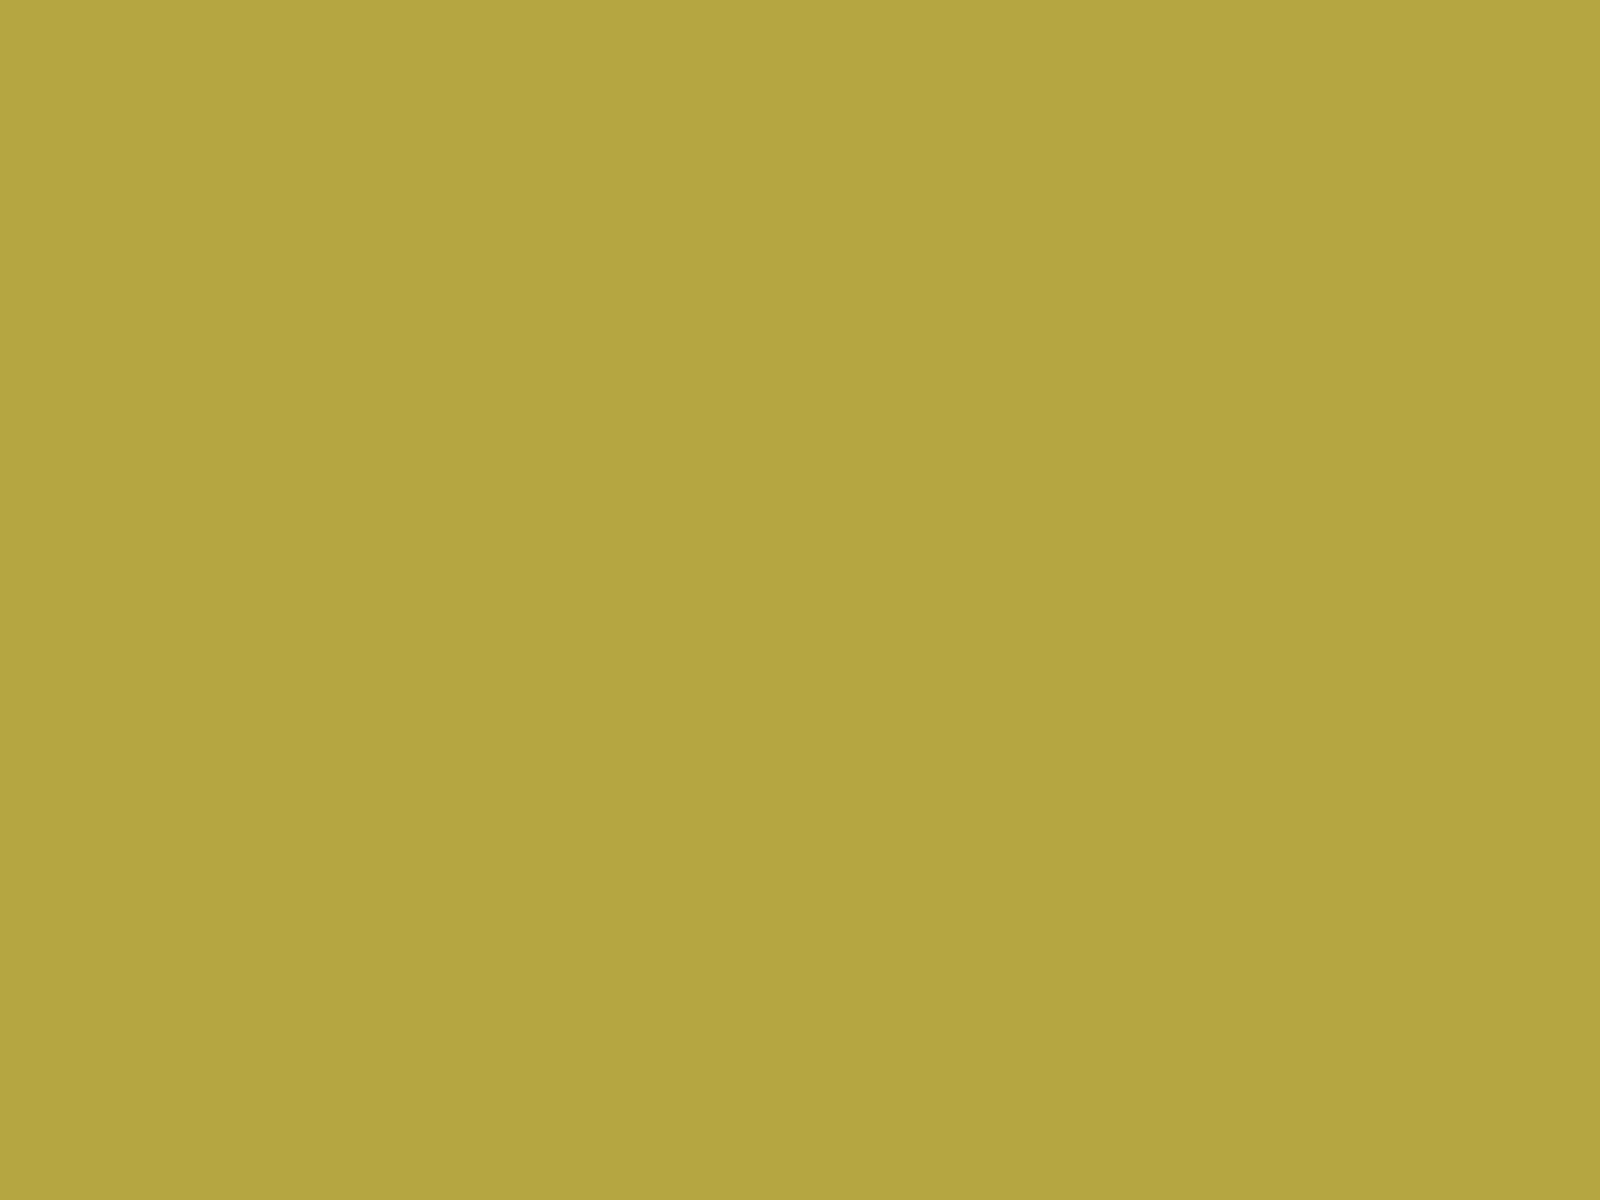 1600x1200 Brass Solid Color Background